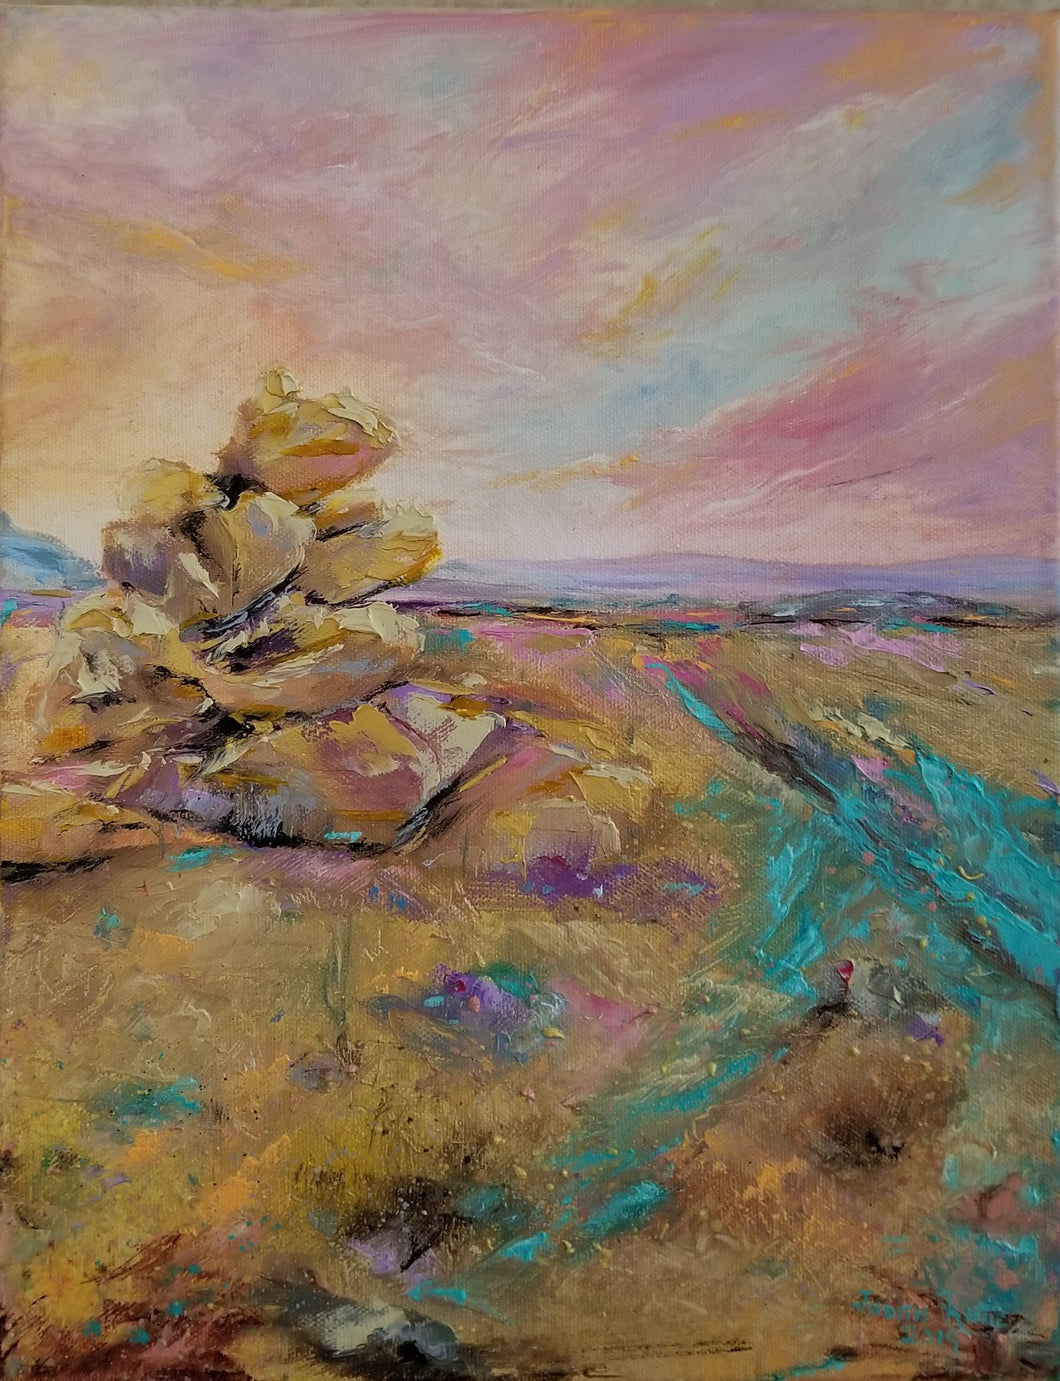 Carefree Colors - original oil painting, landscape, boulders, rocks, southwest, southwestern, desert, Arizona, oil painting, painting, on canvas, colorful, wall art, home decor